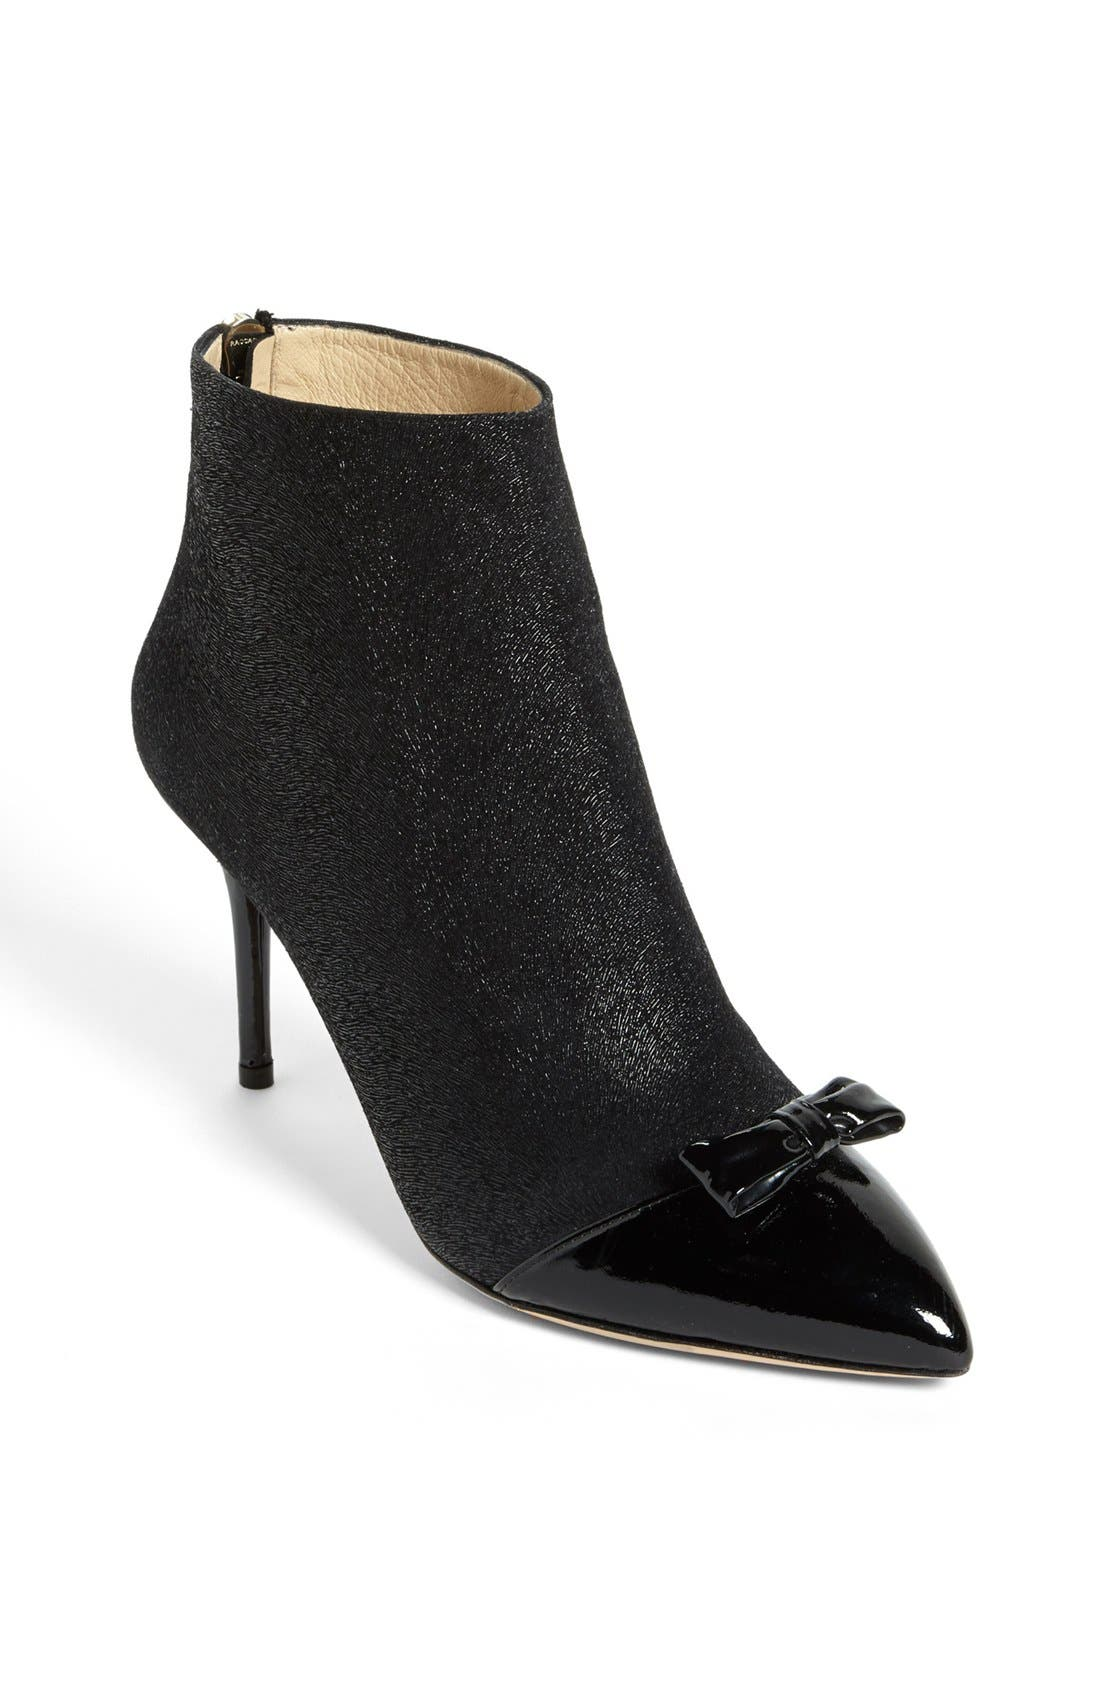 Alternate Image 1 Selected - Charlotte Olympia 'Lupo' Bow Bootie